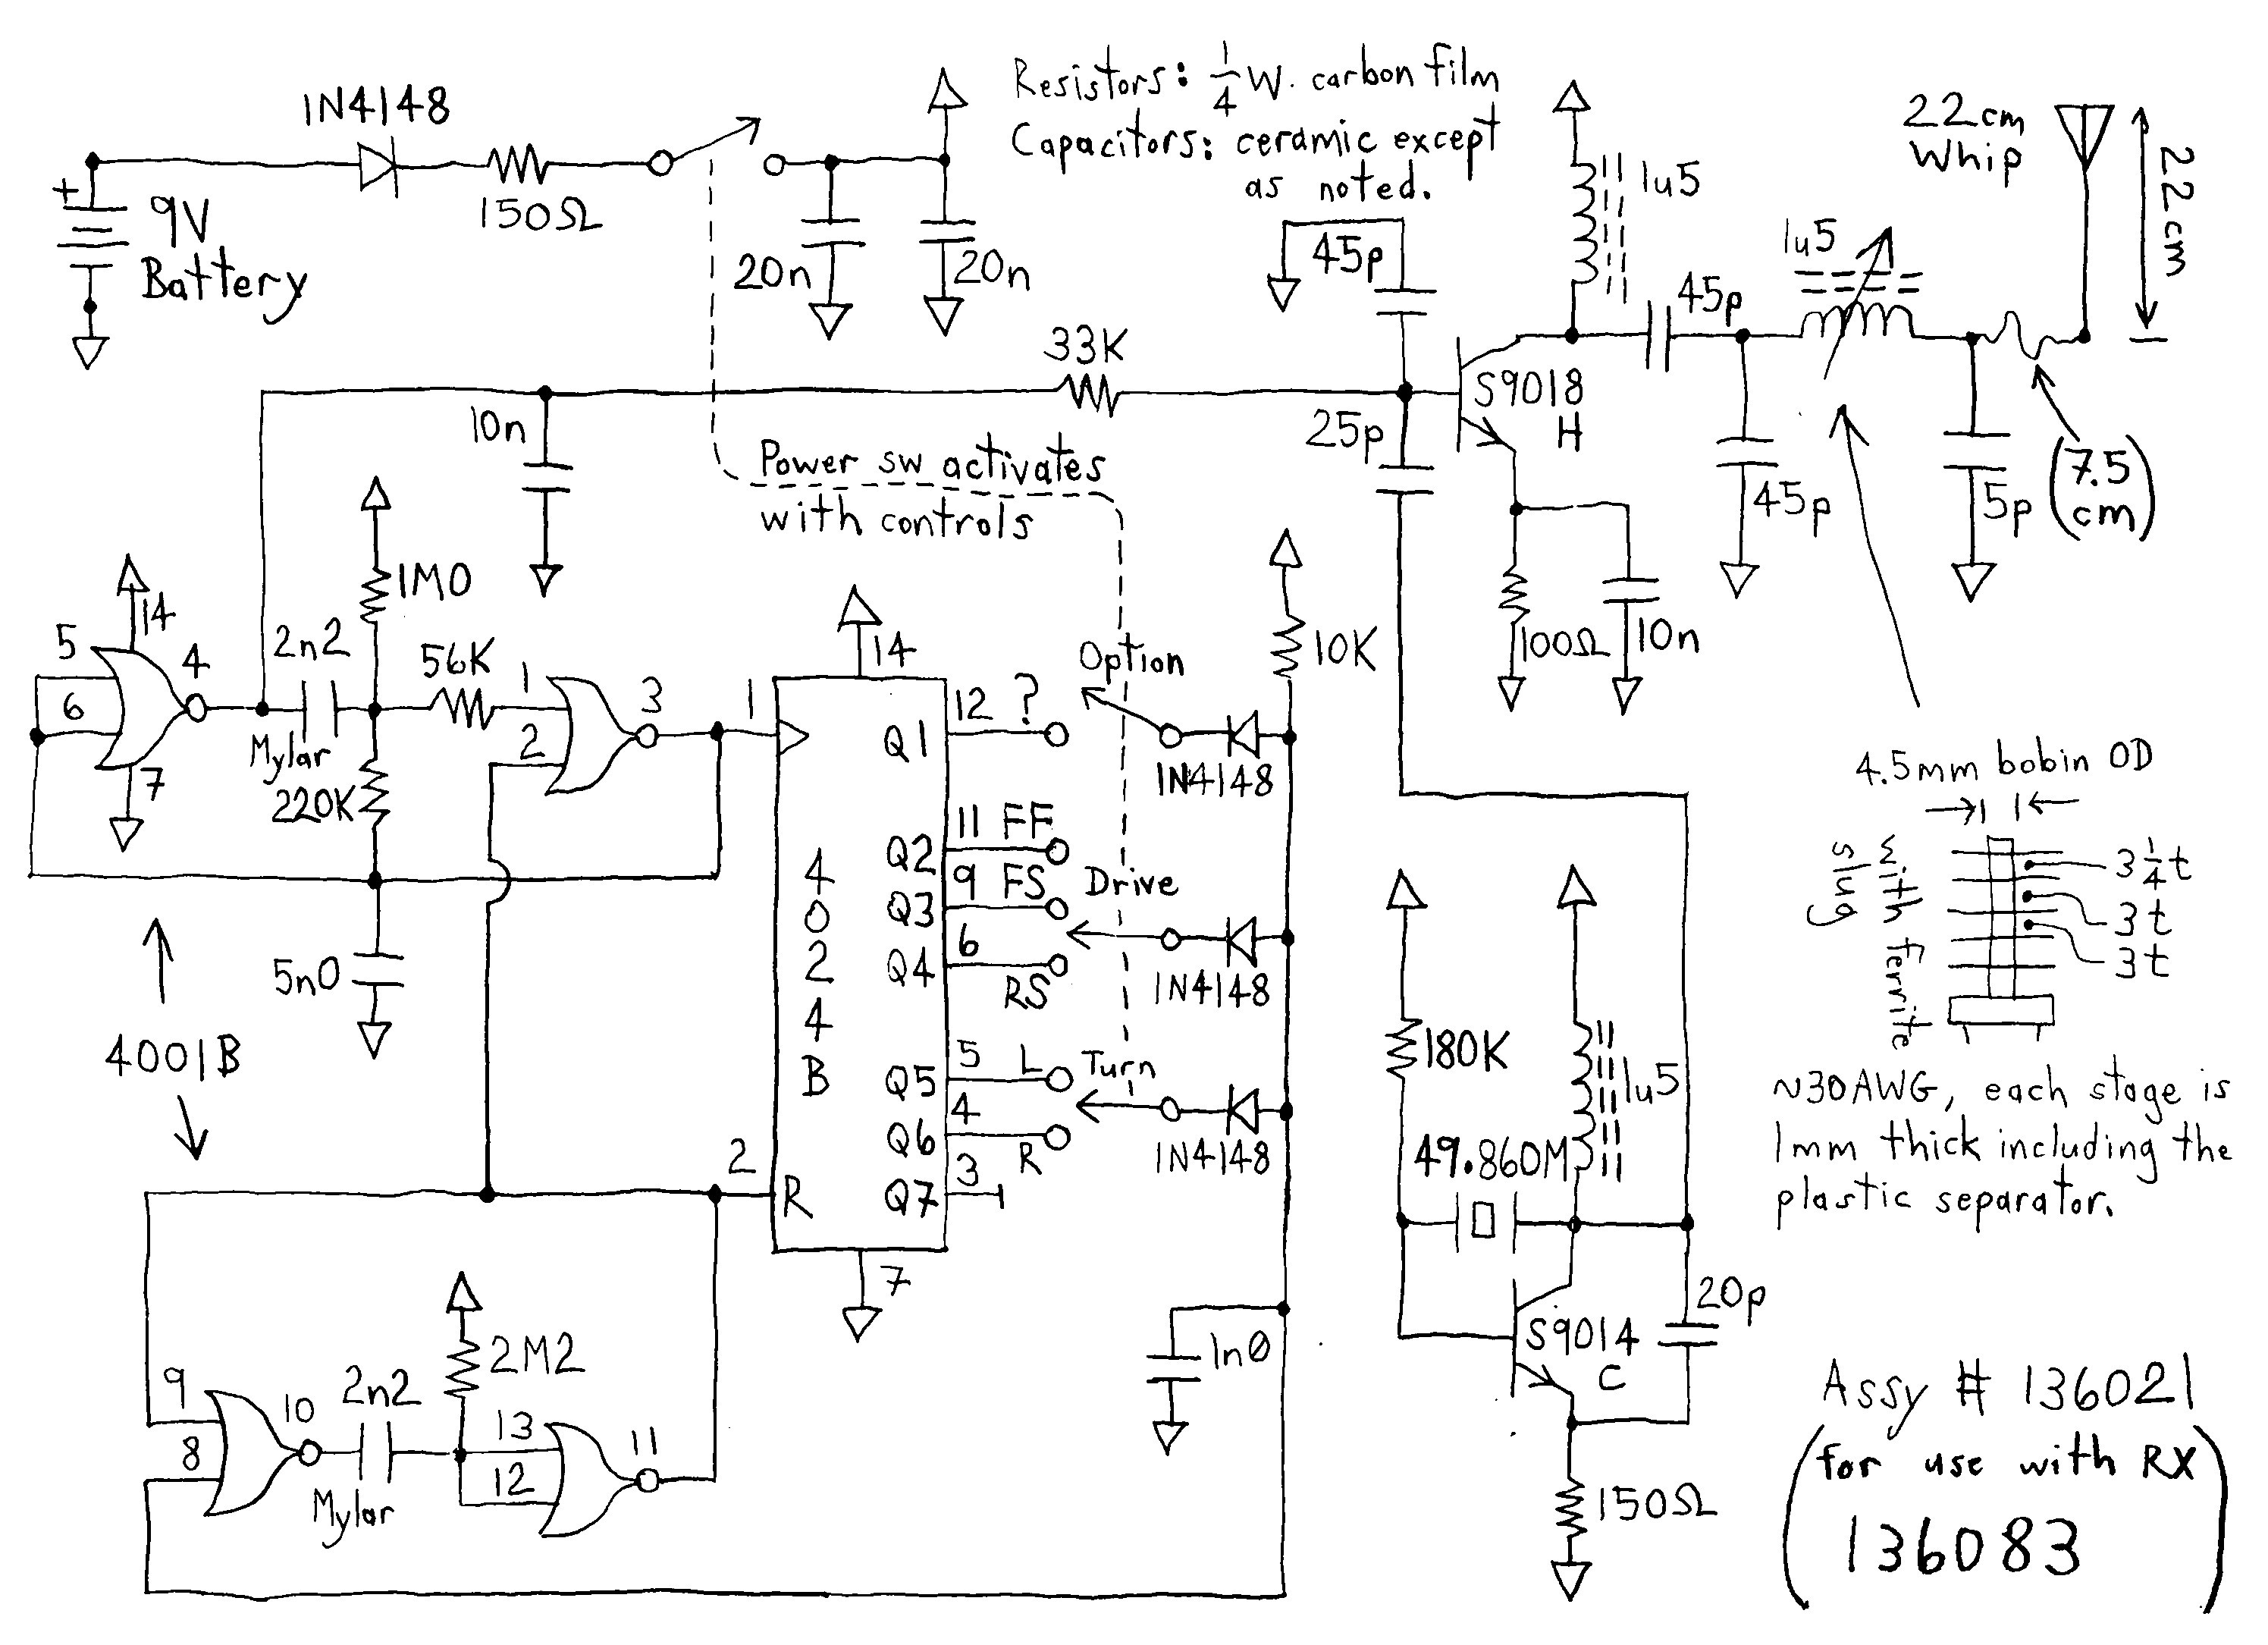 electric toy car wiring diagram wiring diagram image rh mainetreasurechest com electric rc plane wiring diagram electric rc plane wiring diagram